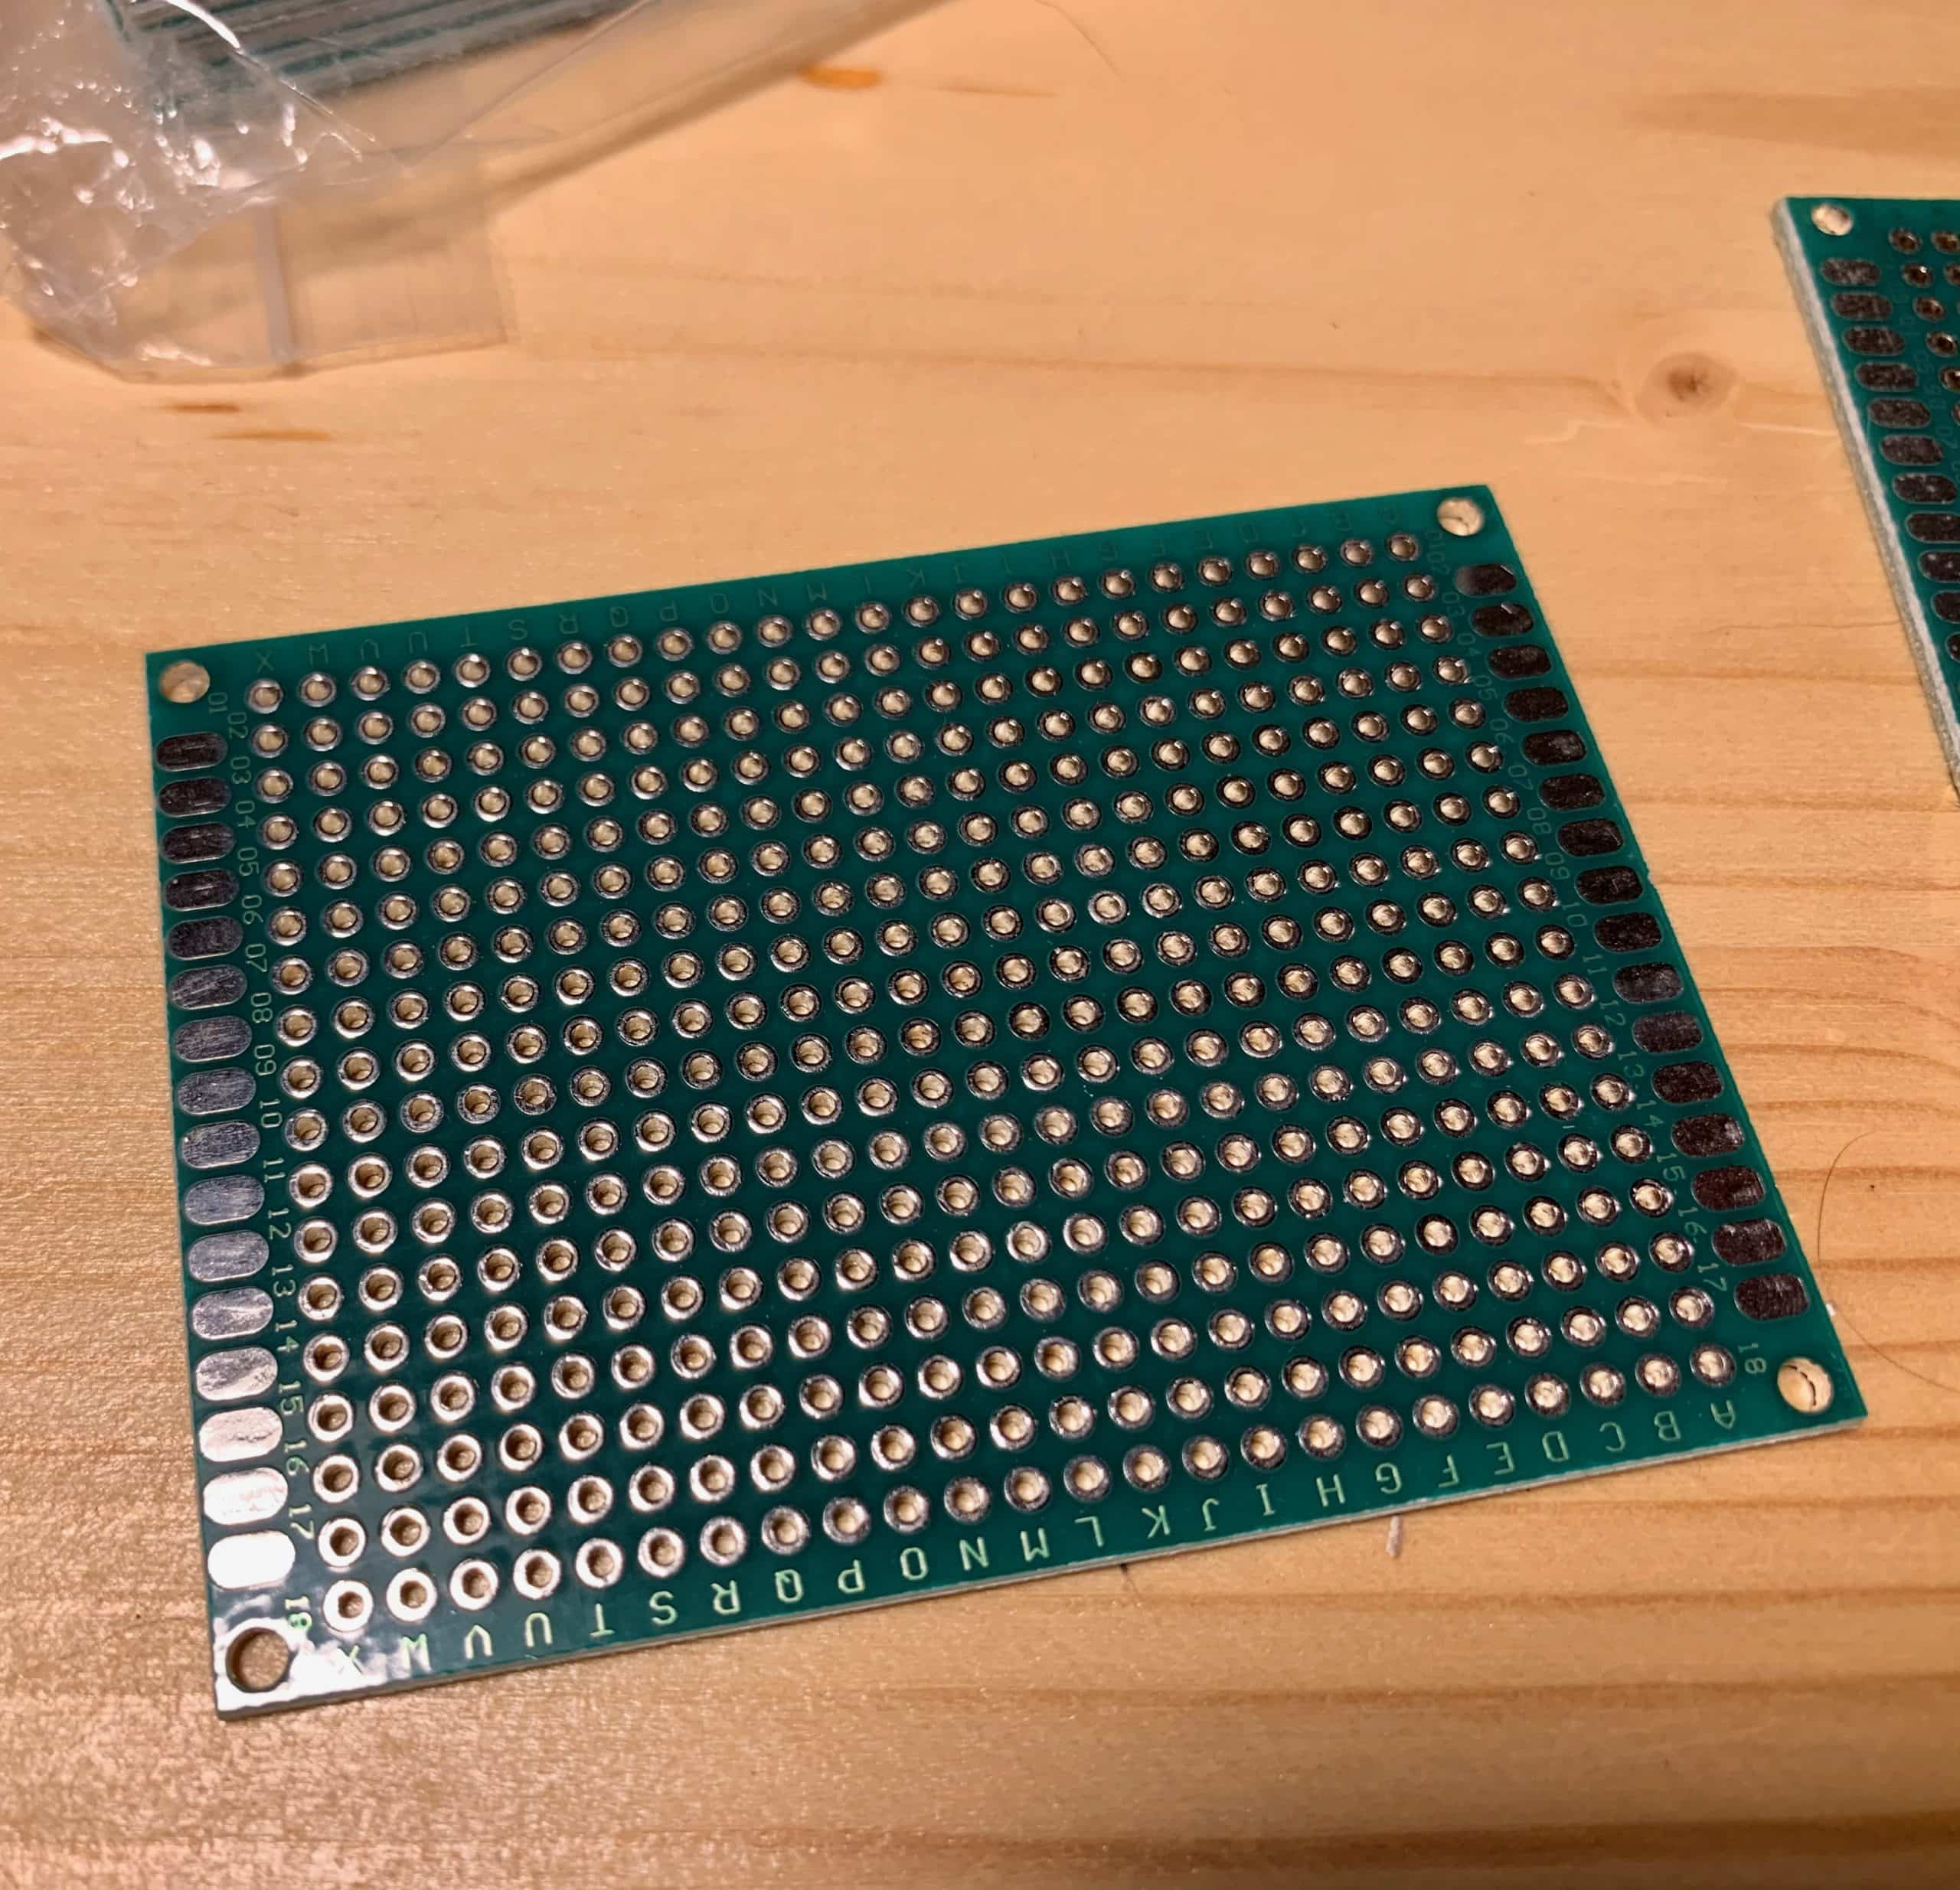 Double Sided Prototype PCB